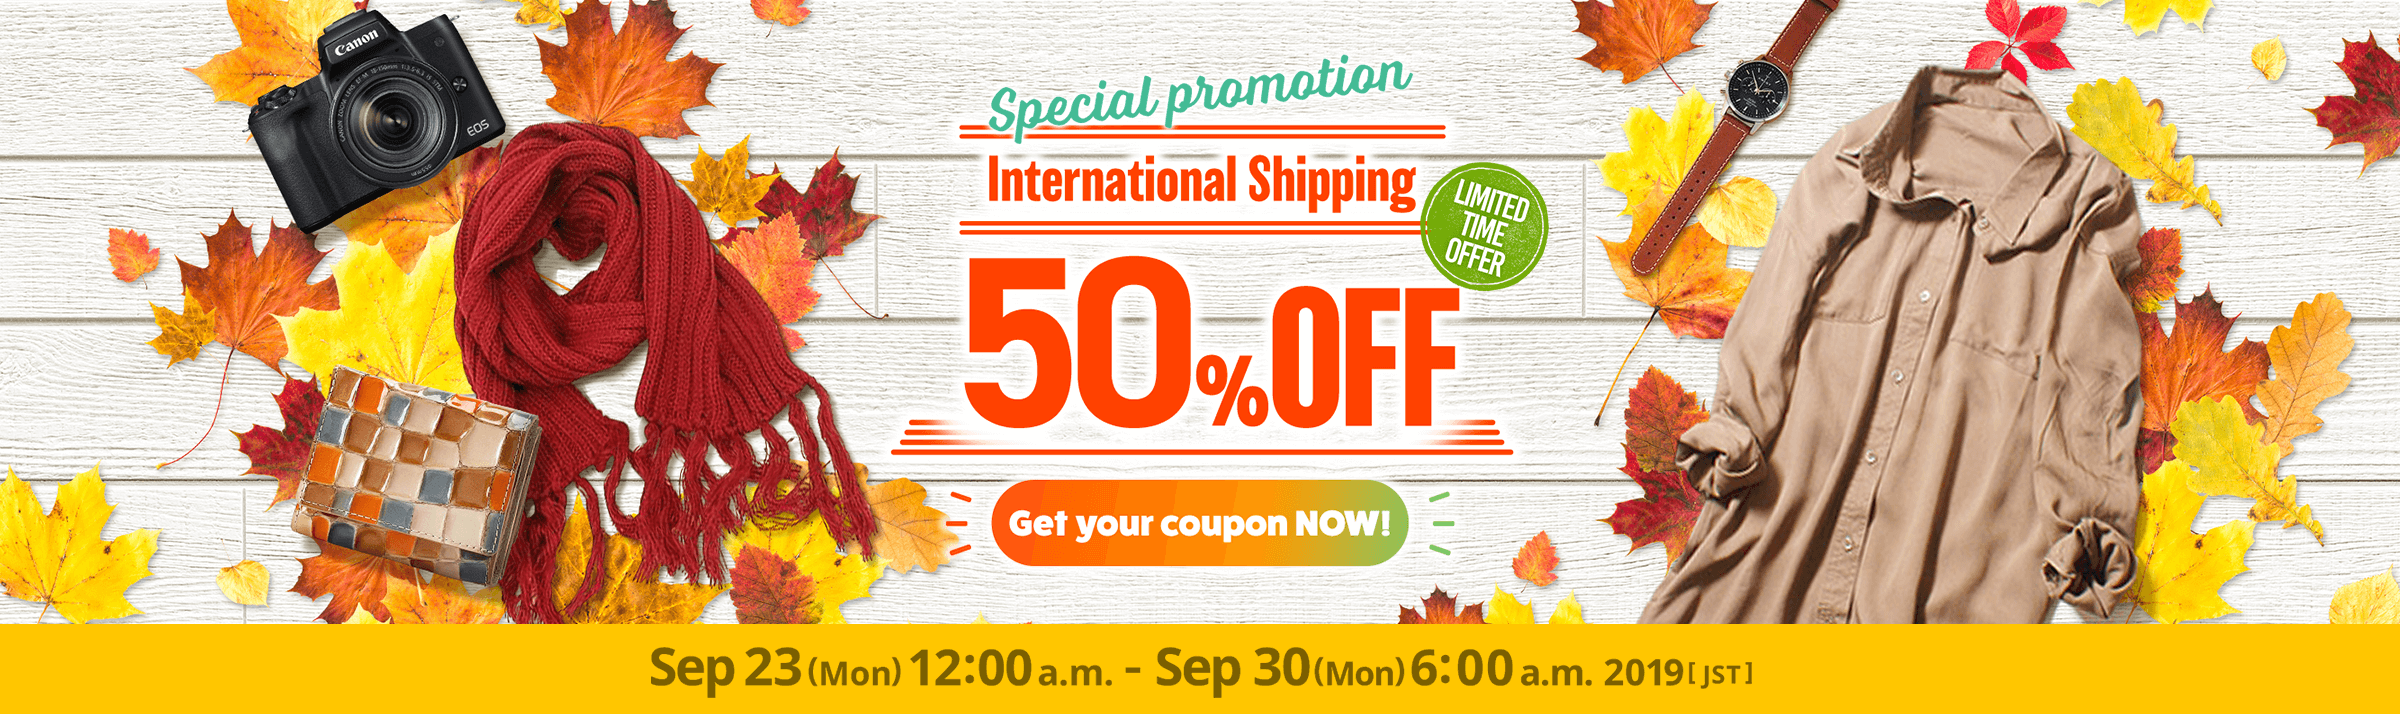 International Shipping 50% OFF !